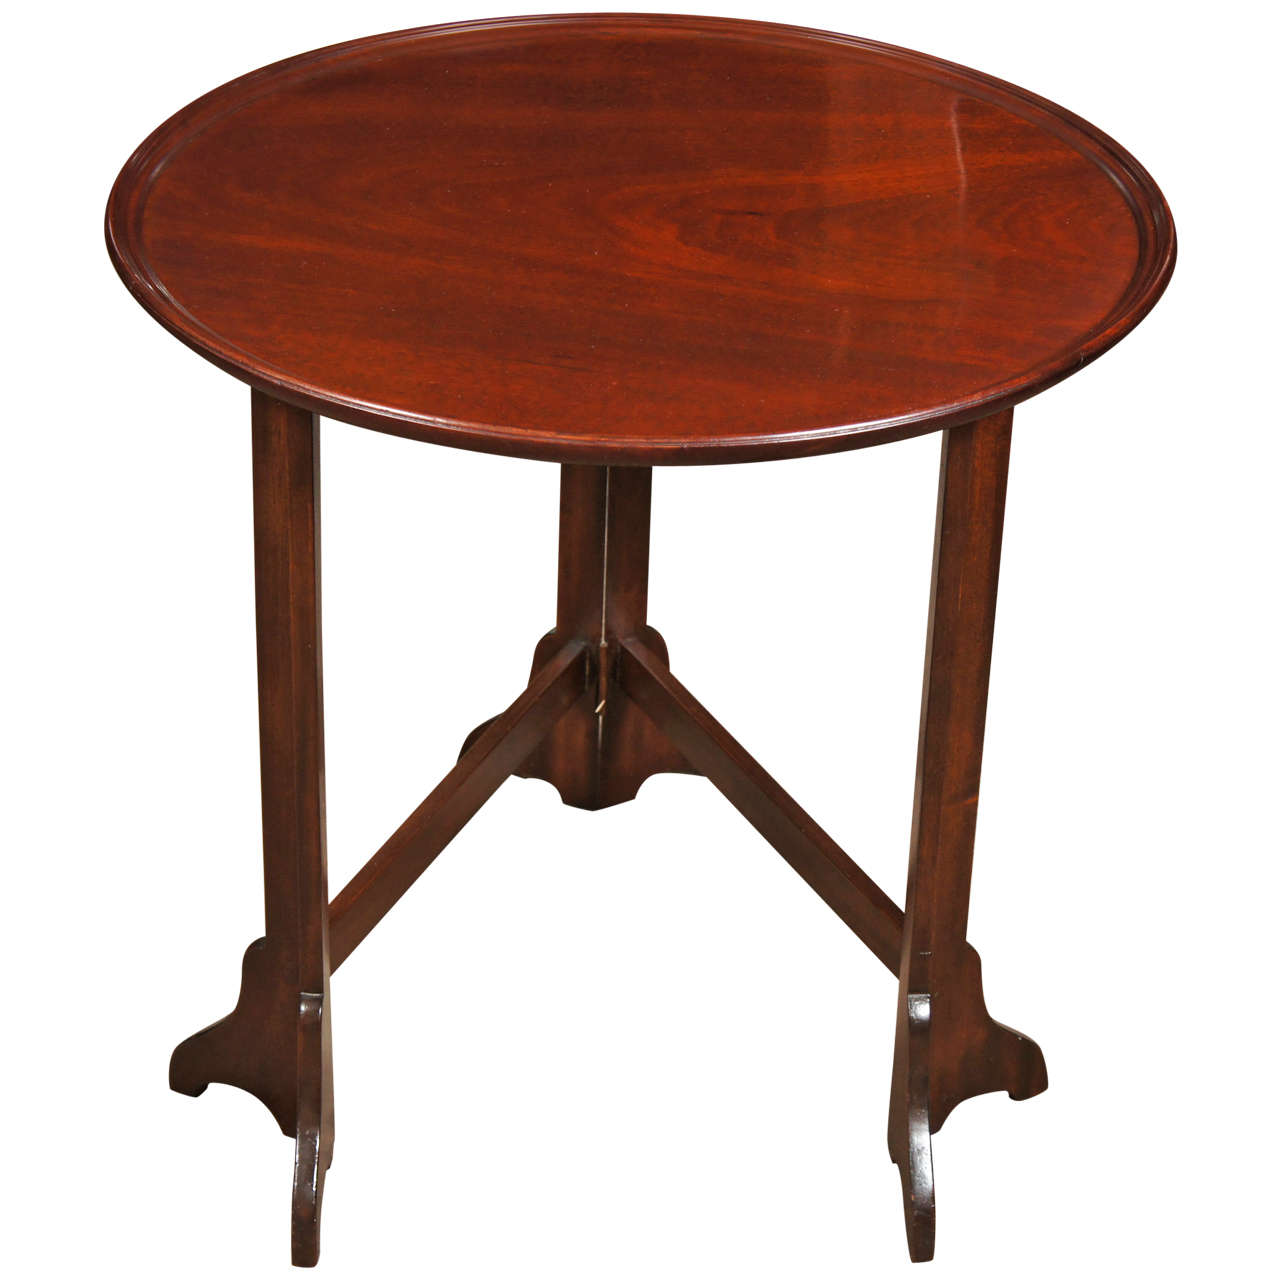 George Iii Style Mahogany Fold Up Side Table At 1stdibs